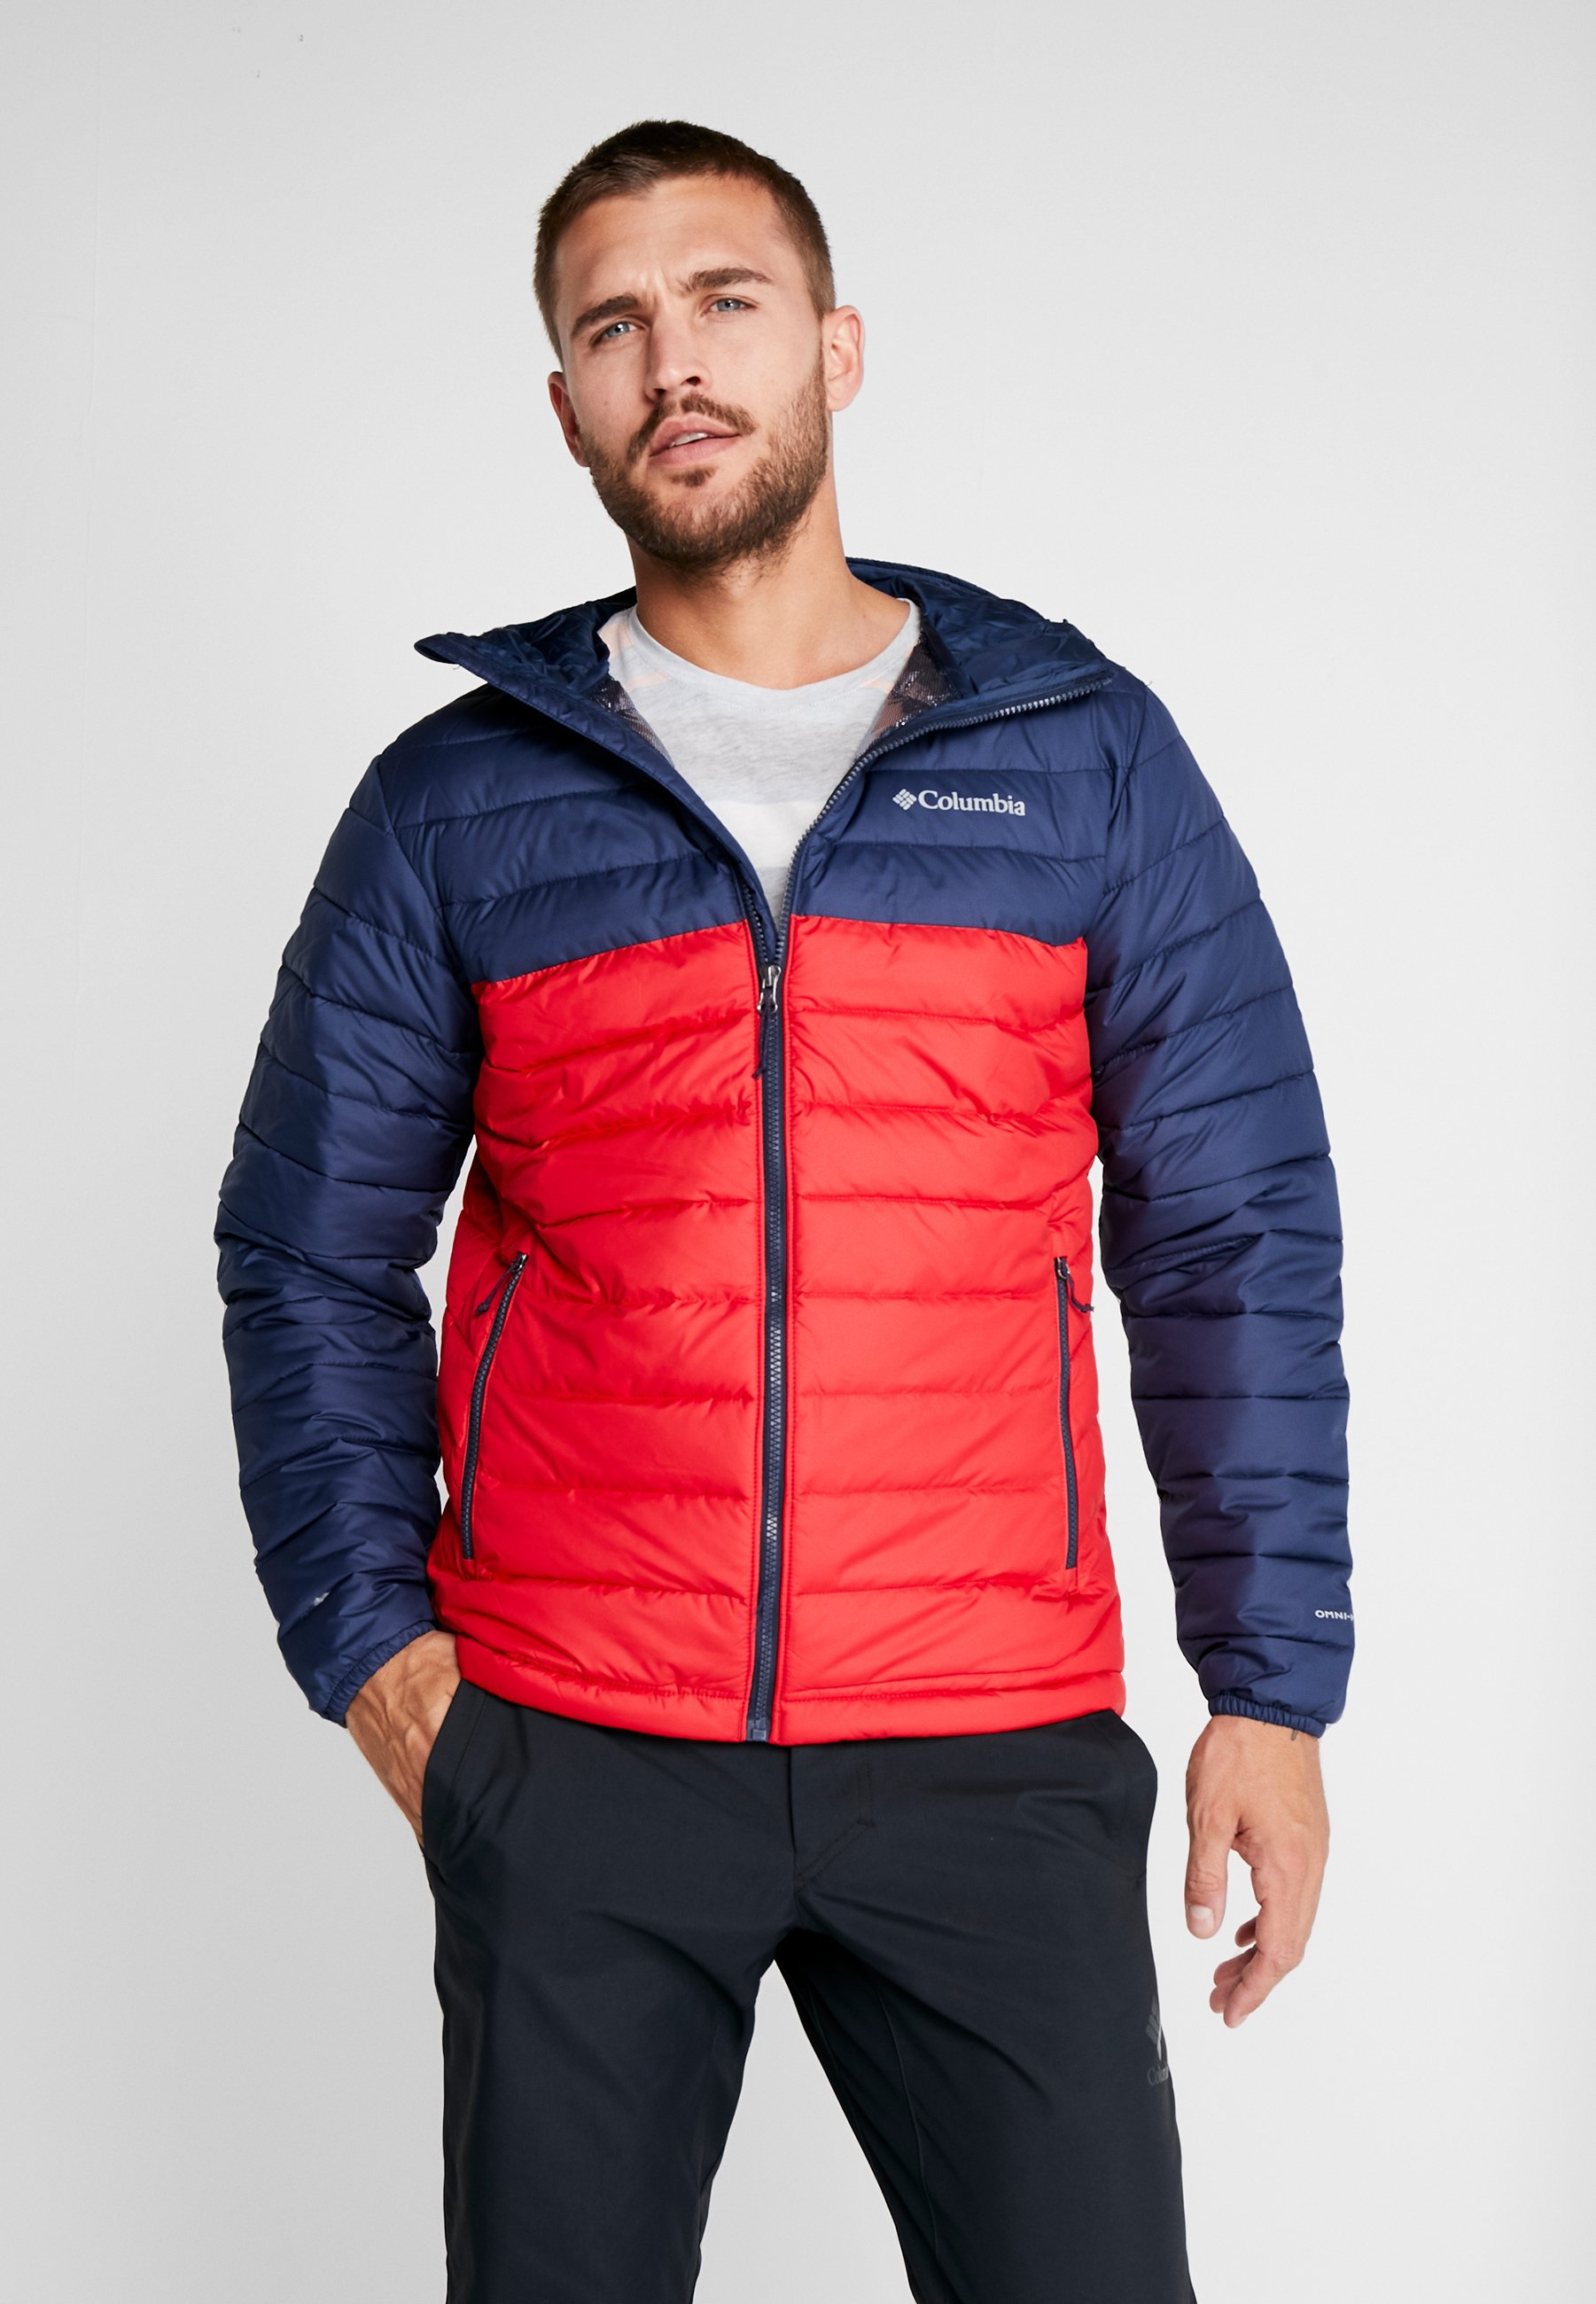 Hooded Red JacketVeste D'hiver Mountain Powder Columbia Lite Navy collegiate A4RL5j